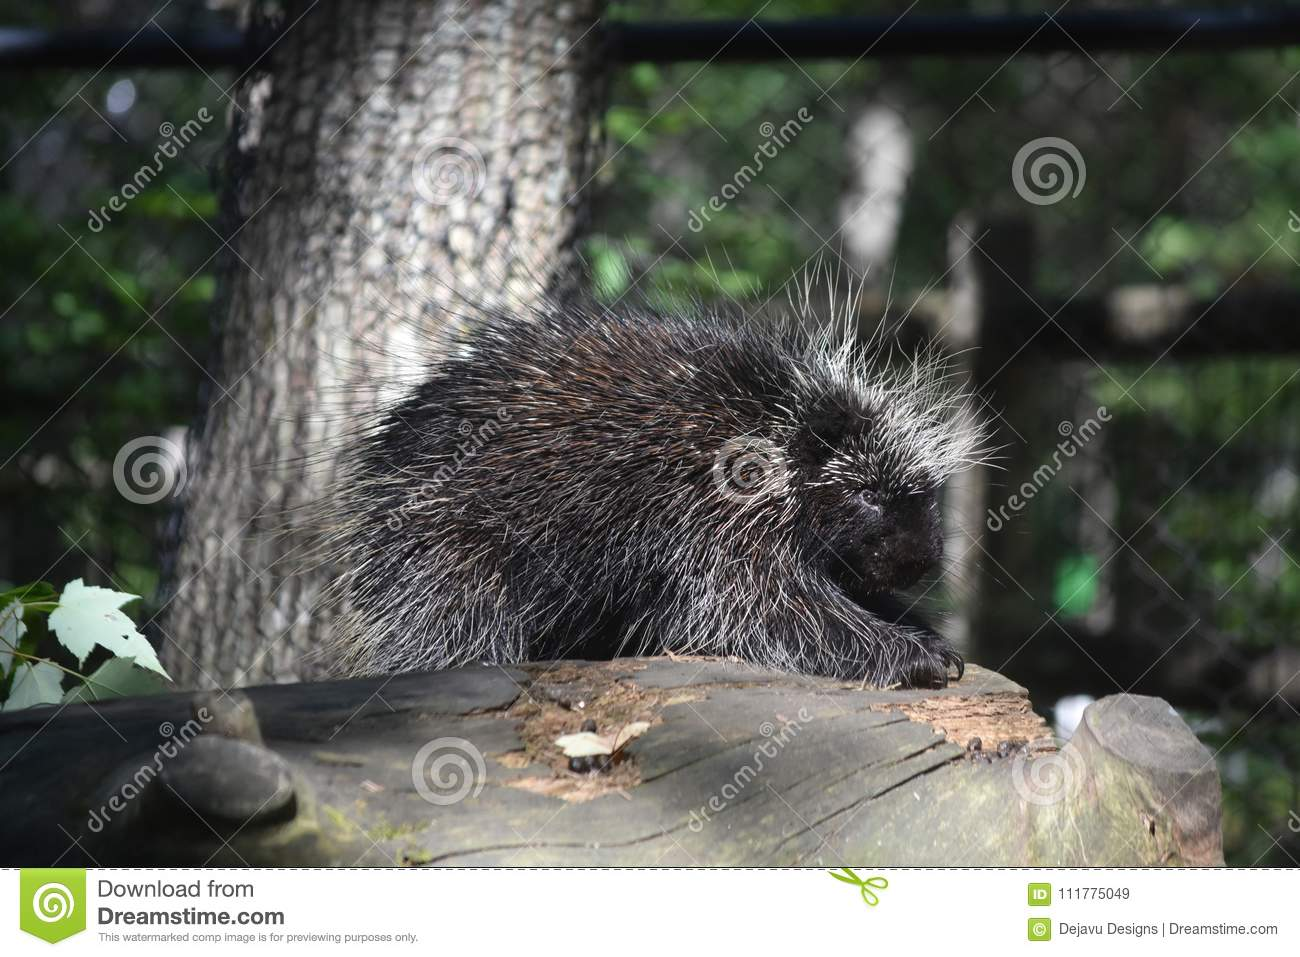 Black porcupine with white tipped prickly quills